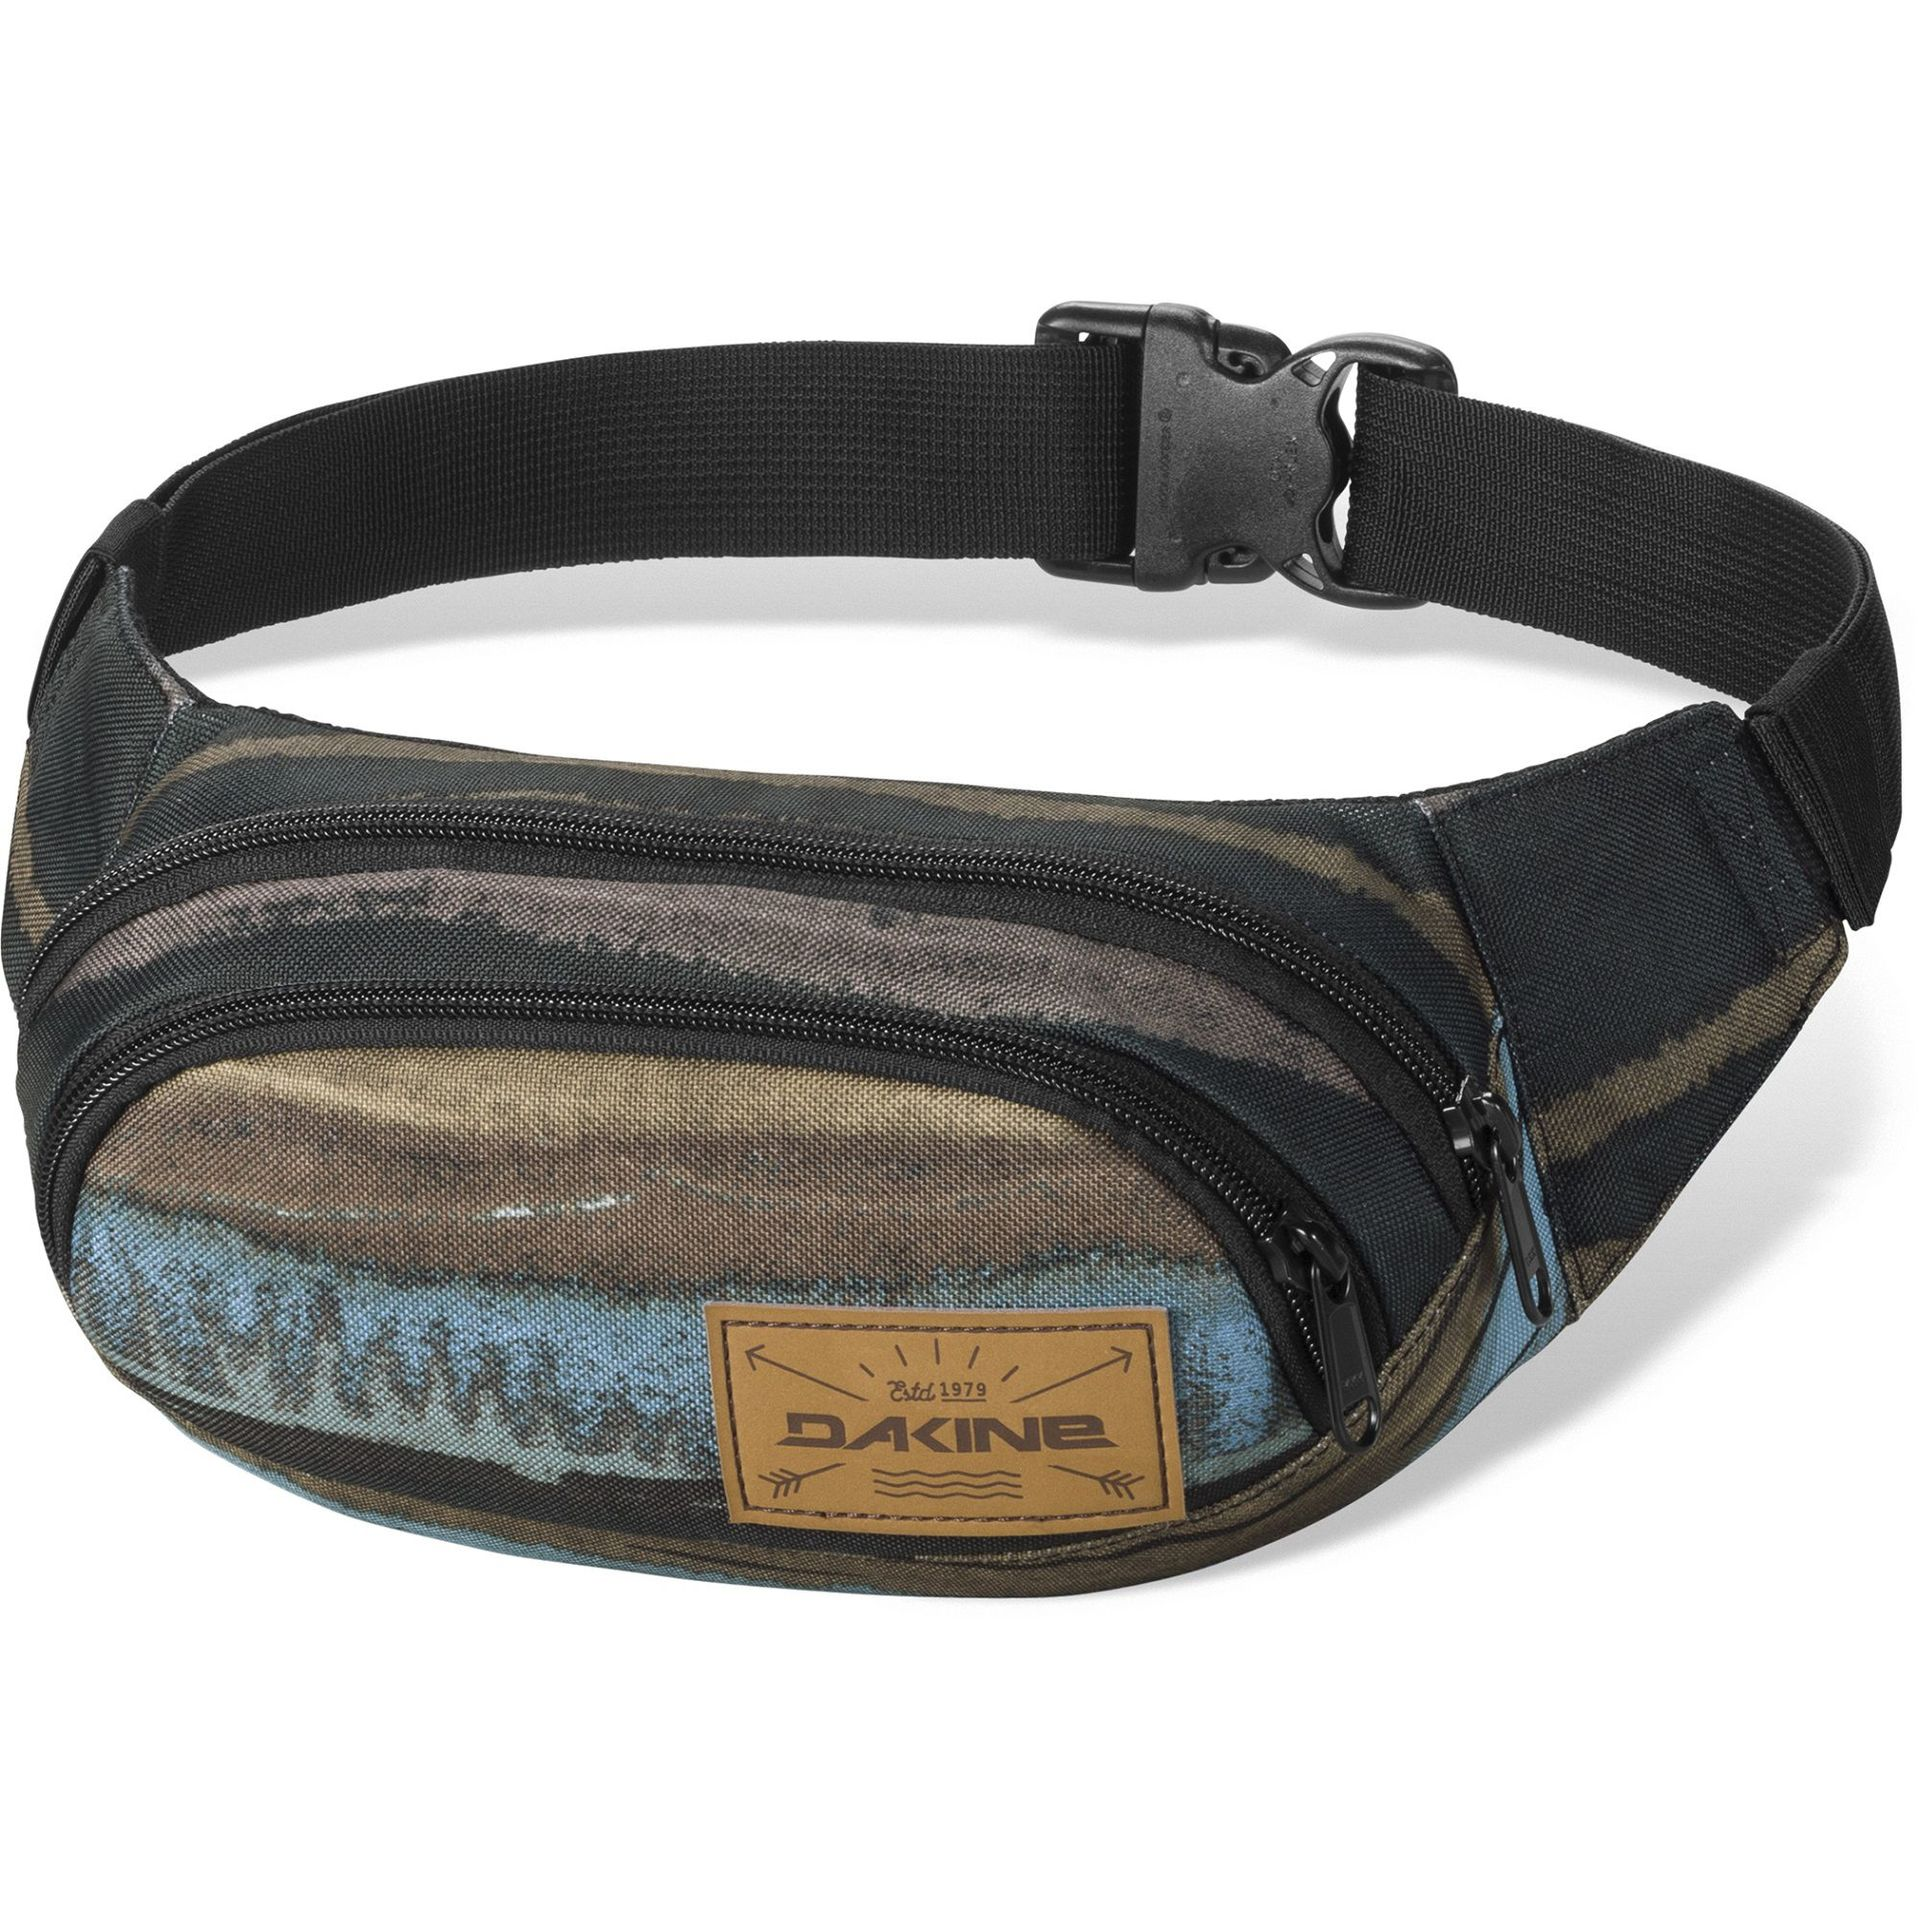 NERKA DAKINE HIP PACK SHORELINE